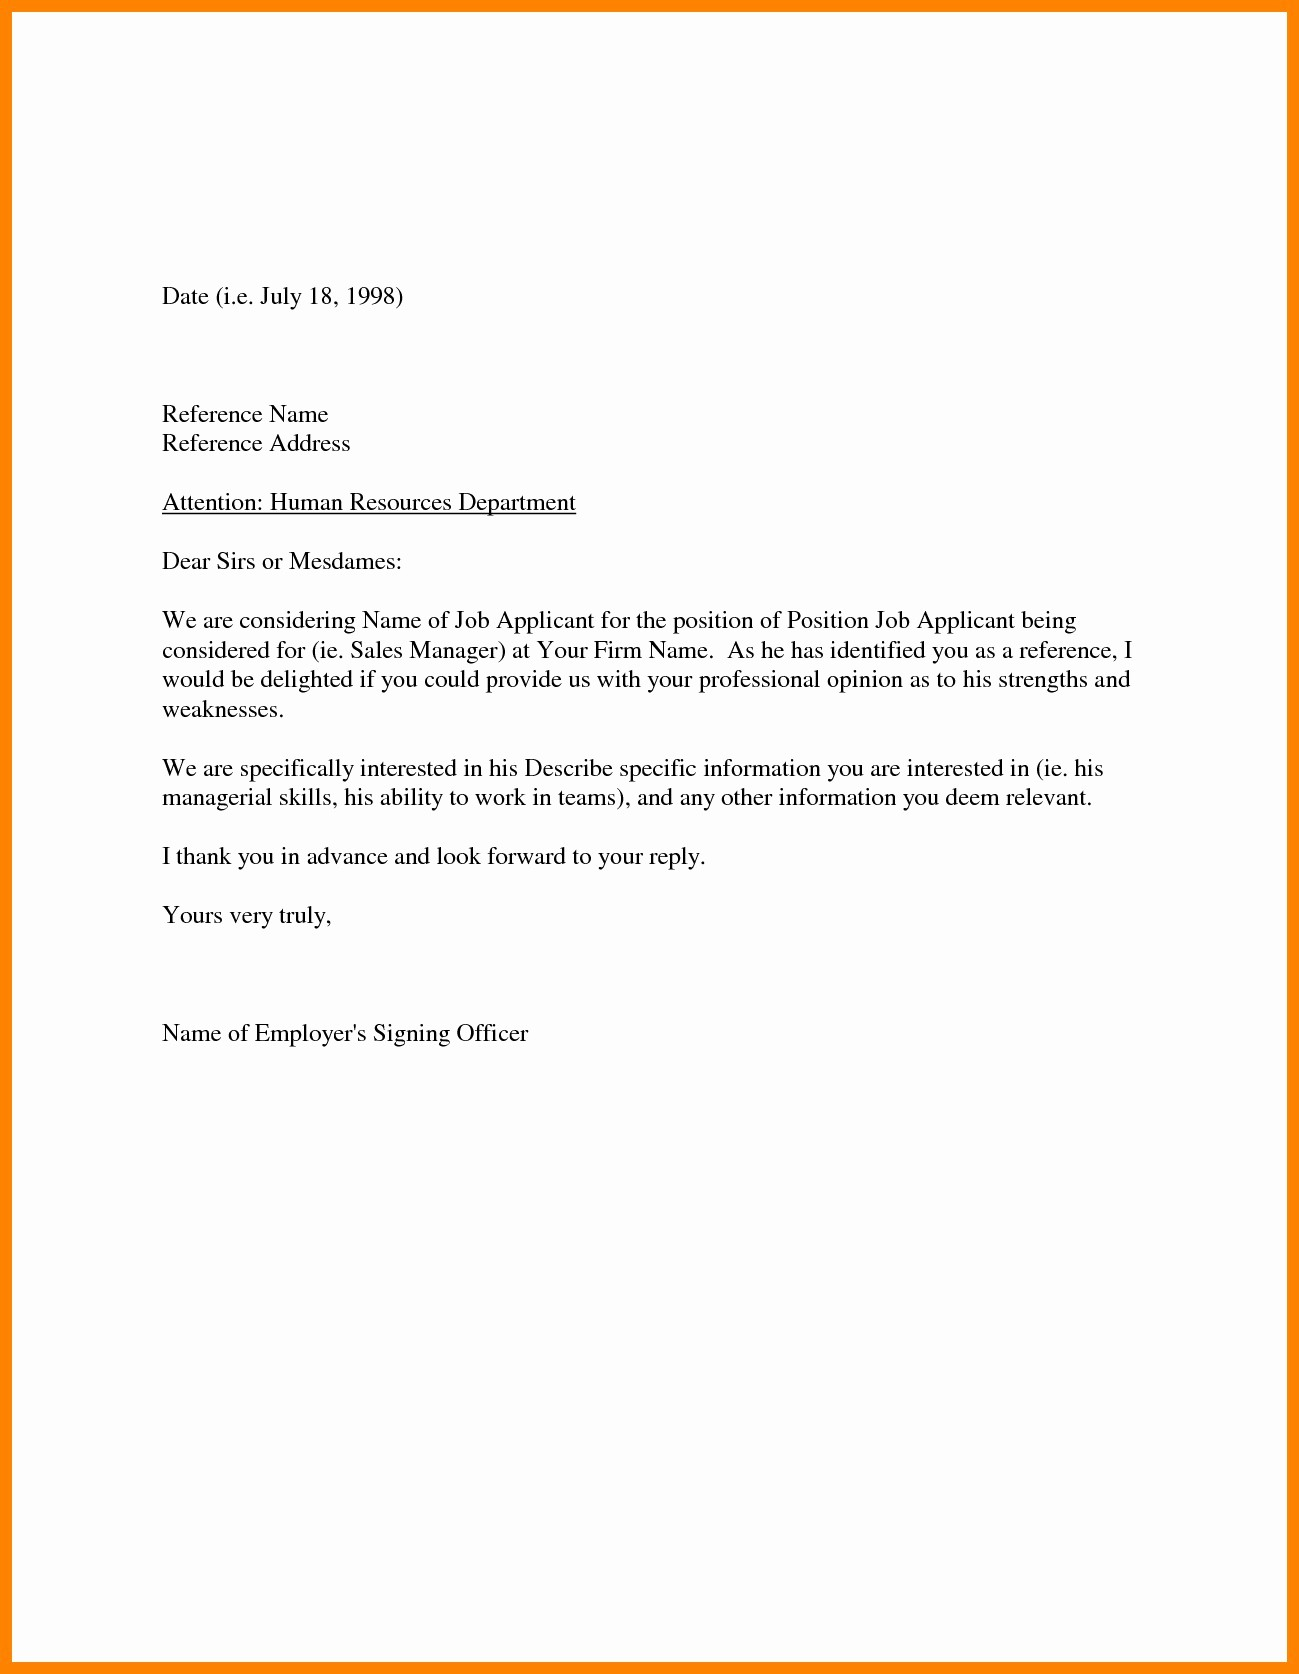 Sample Of Employee Reference Letter Fresh Employee Reference Letter From Manager Copy Referral